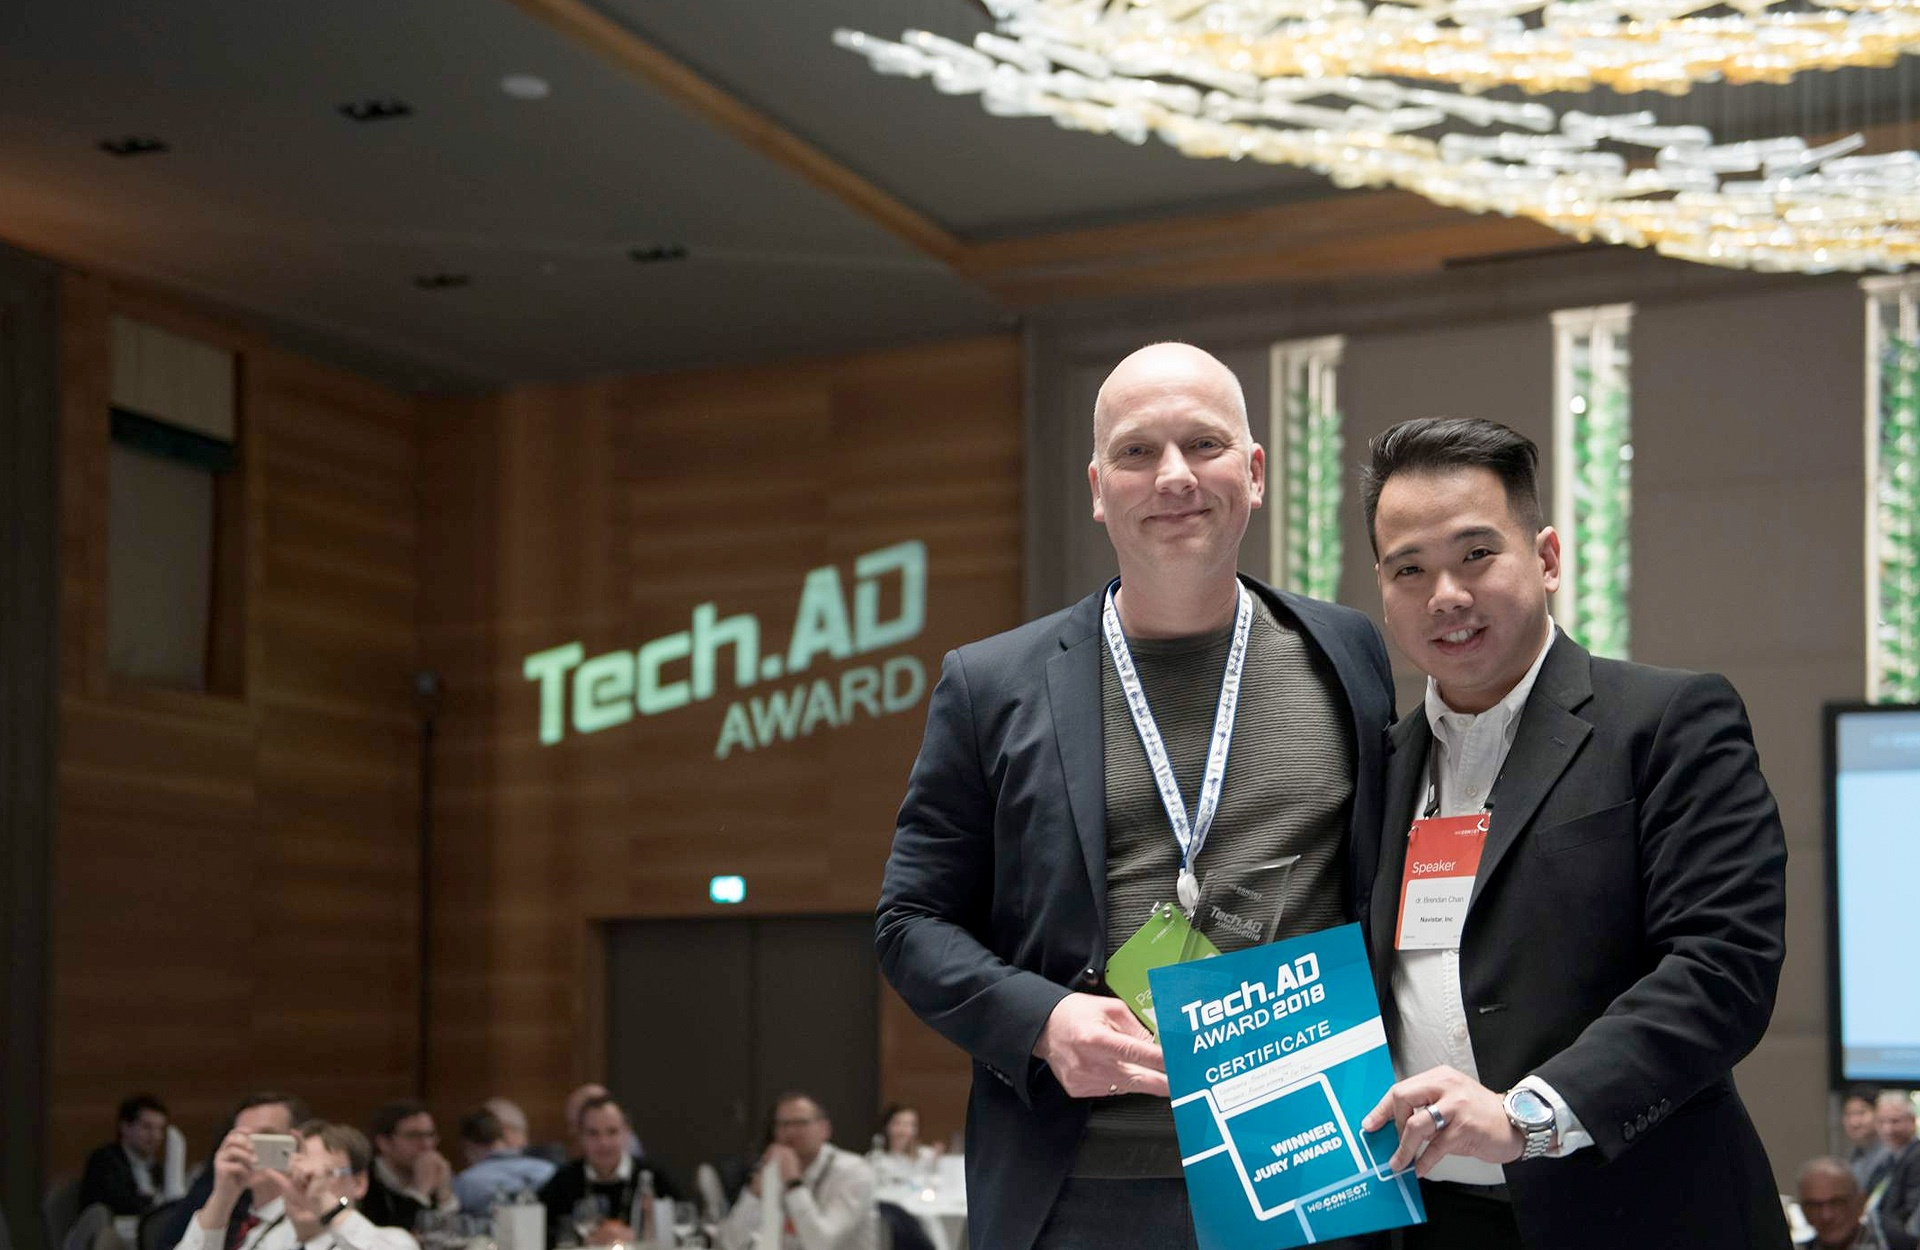 Employees with the award of the Tech.AD Special Jury Award 2018.